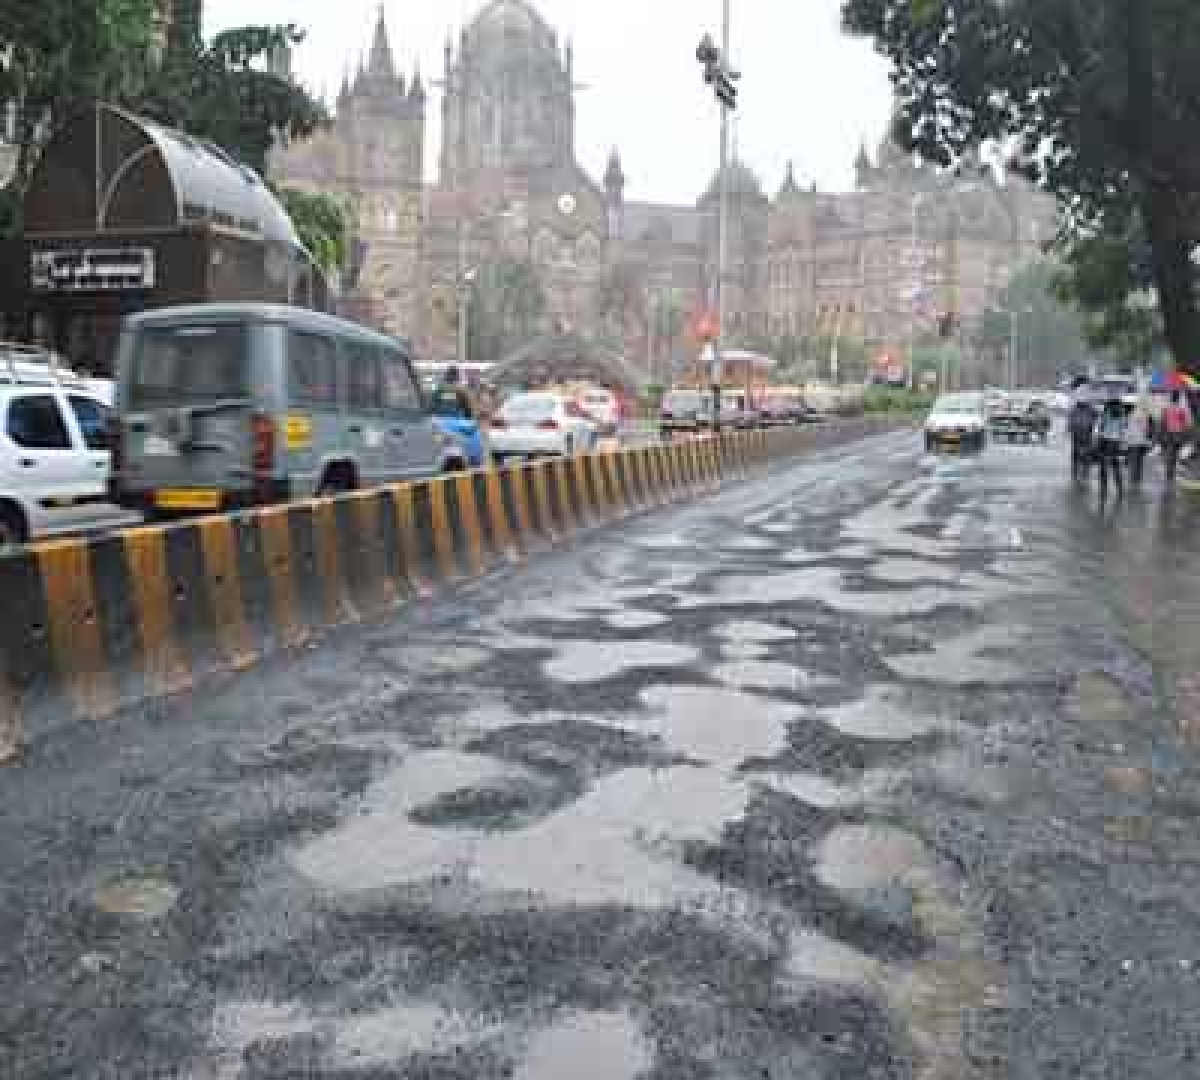 Poth holes near BMC head office due to heavy rain in Mumbai